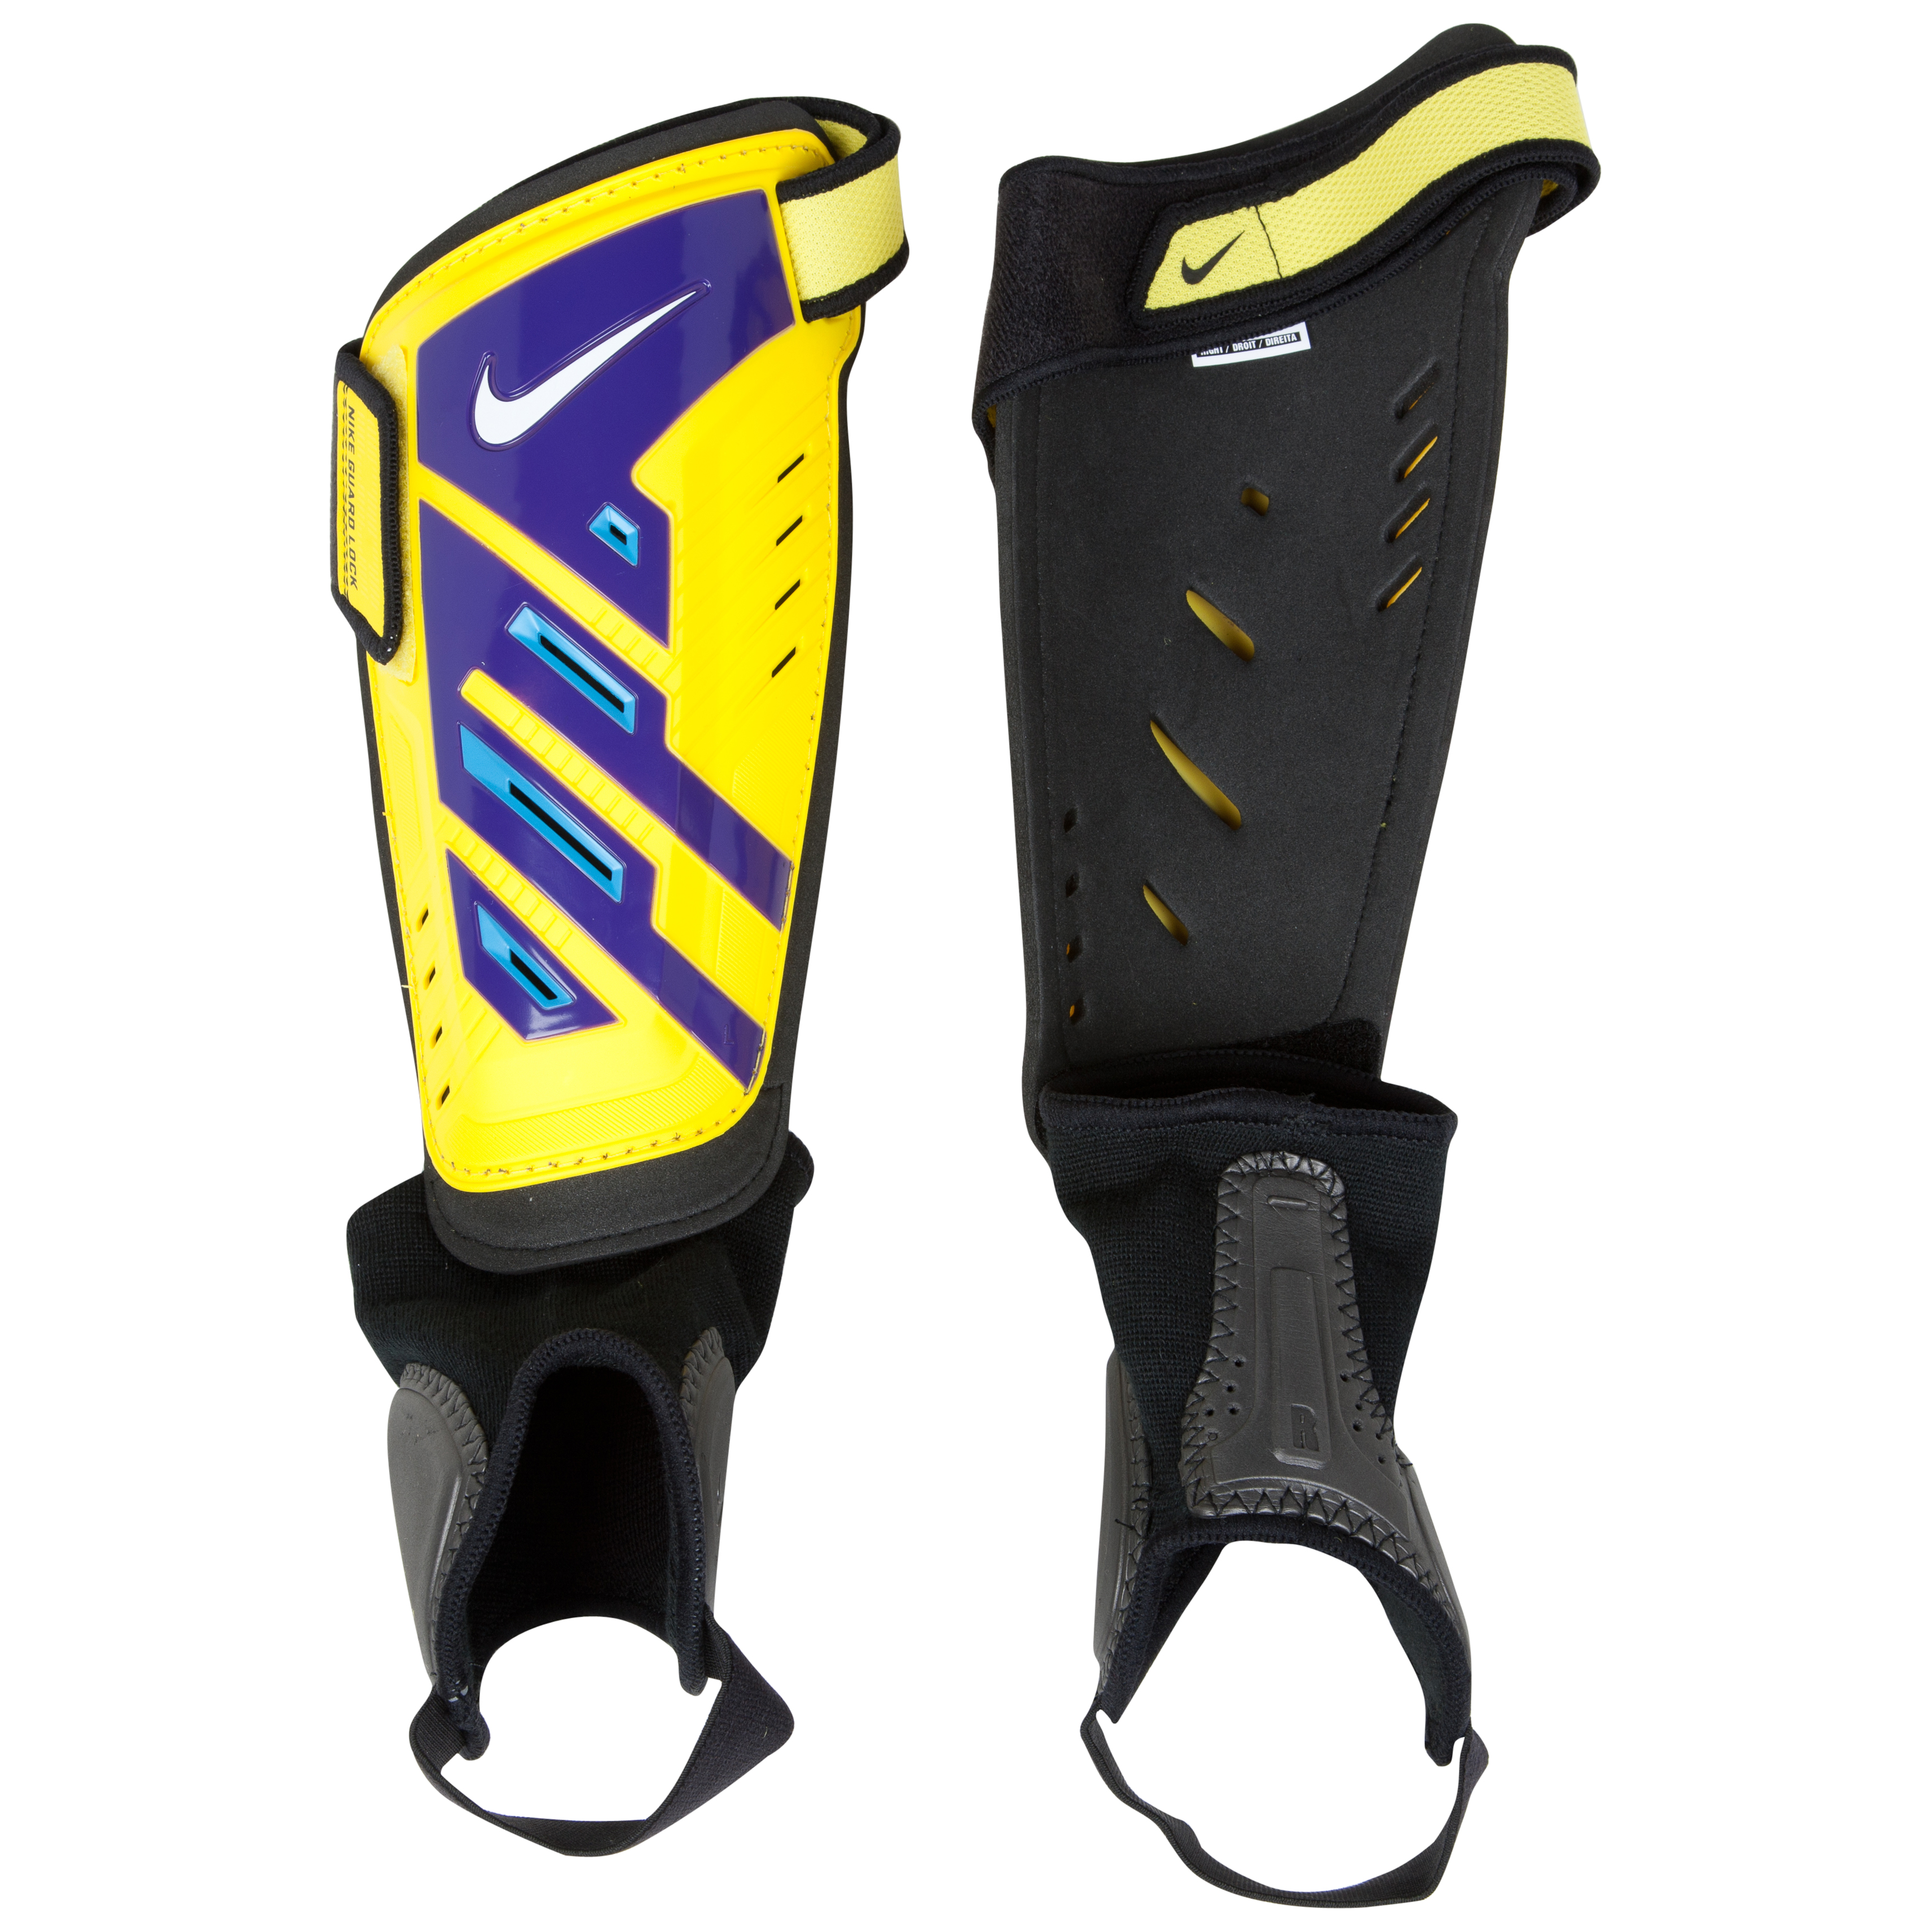 Nike Protegga Shield Shin Pads - Yellow/Purple/(White)